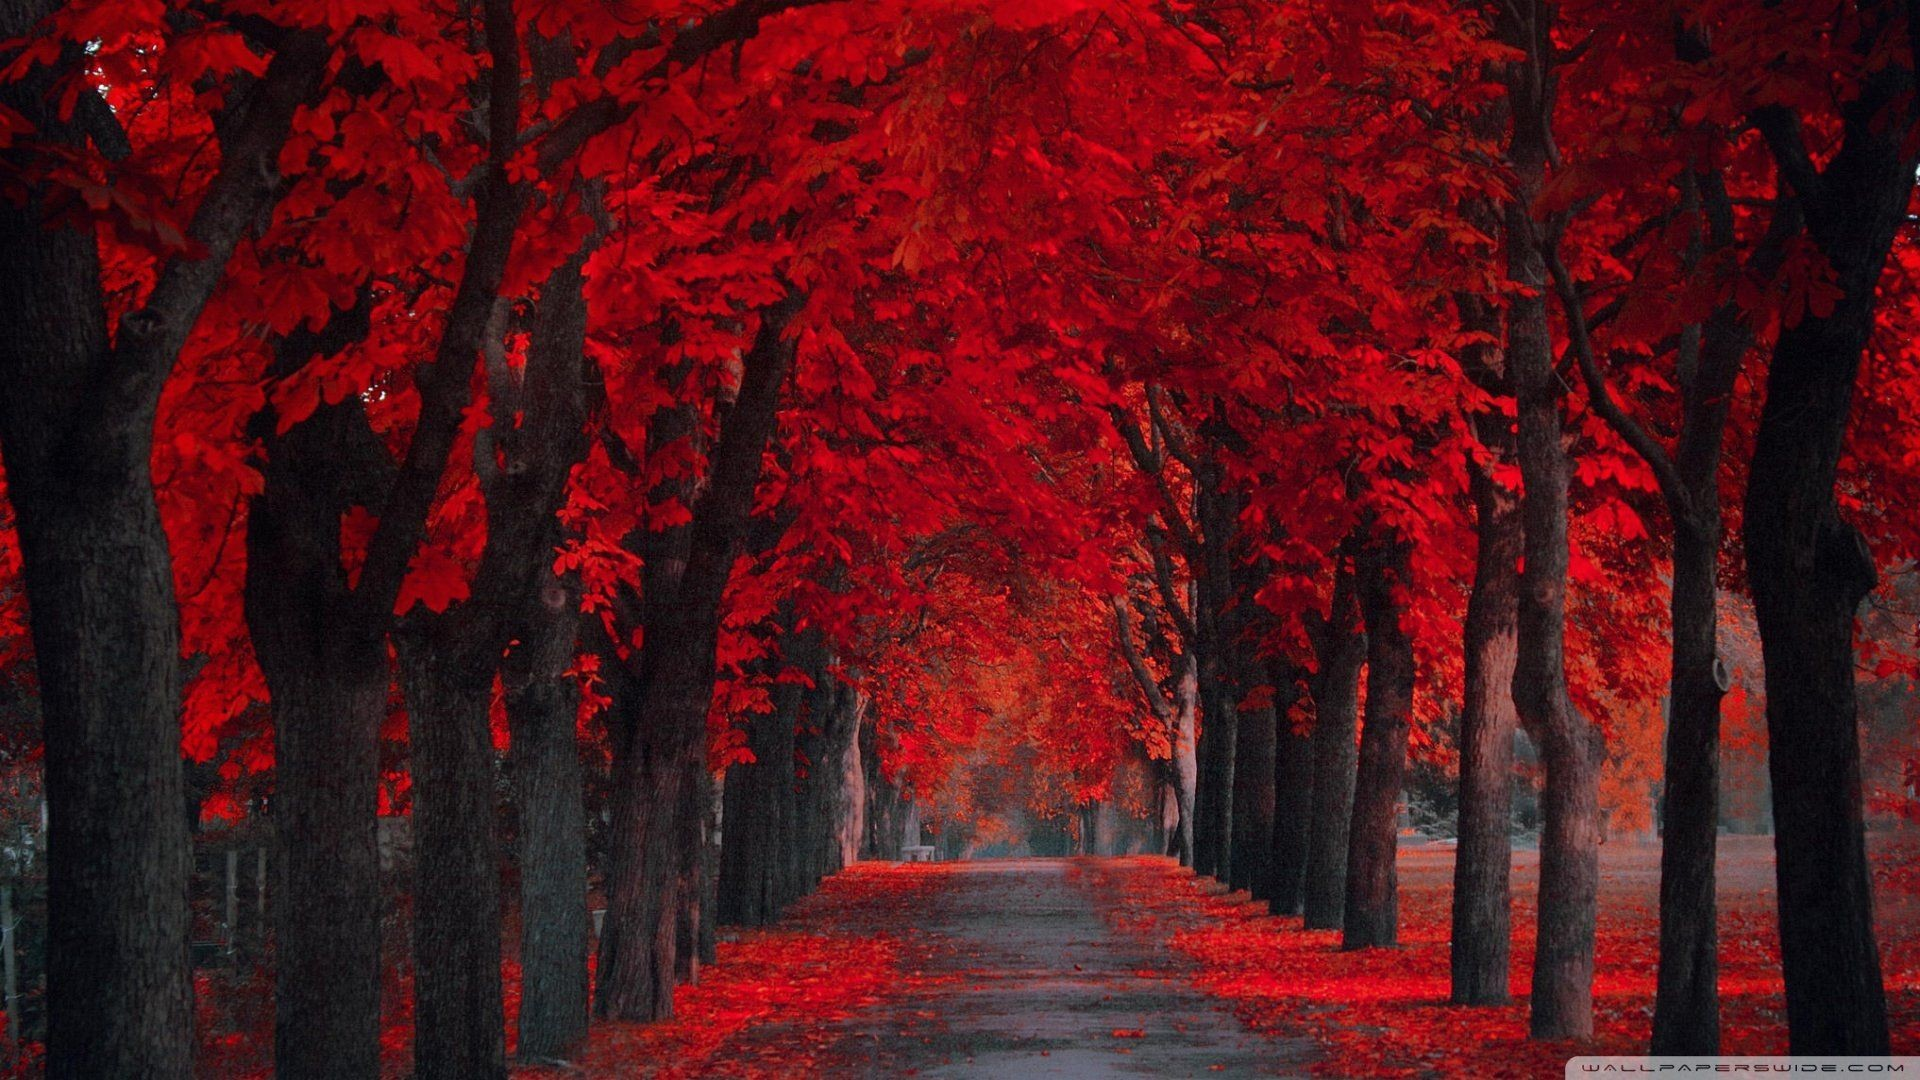 Red Wallpaper For Desktop 73 Pictures